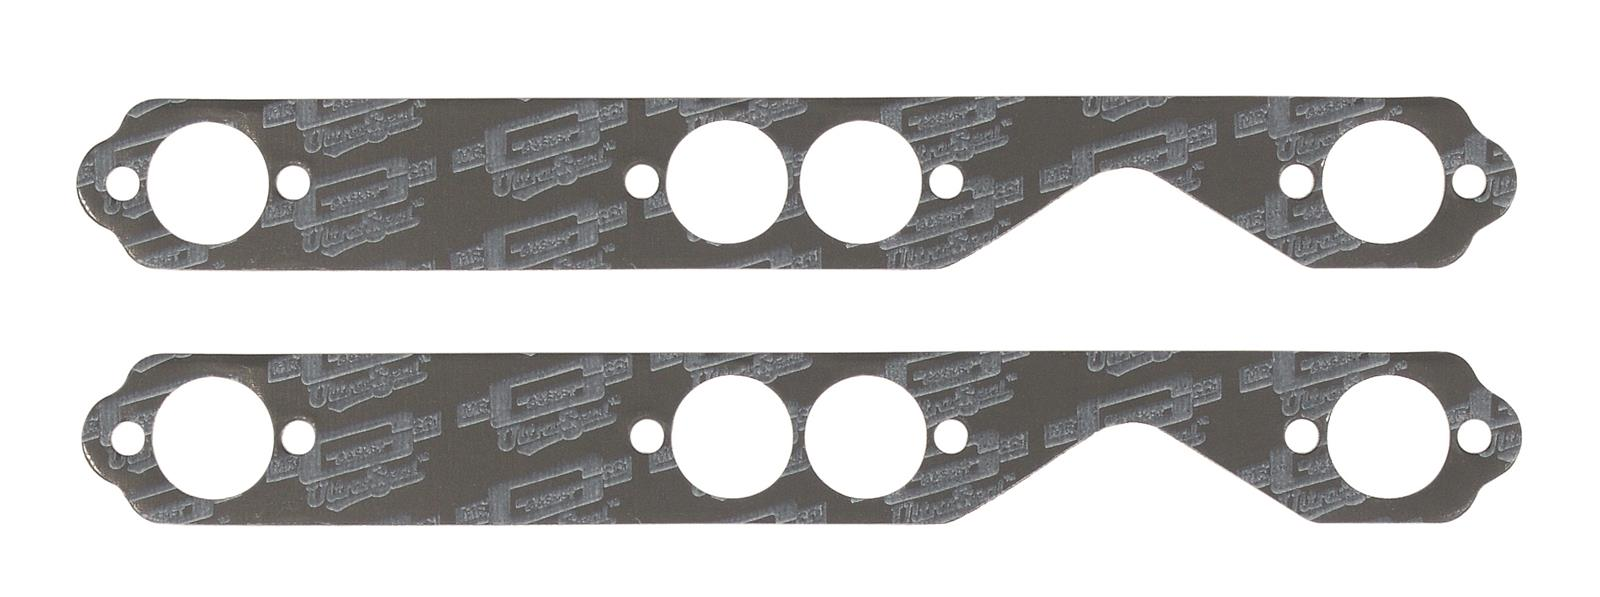 gasket seal. mr. gasket ultra-seal exhaust gaskets 5902 - free shipping on orders over $99 at summit racing seal